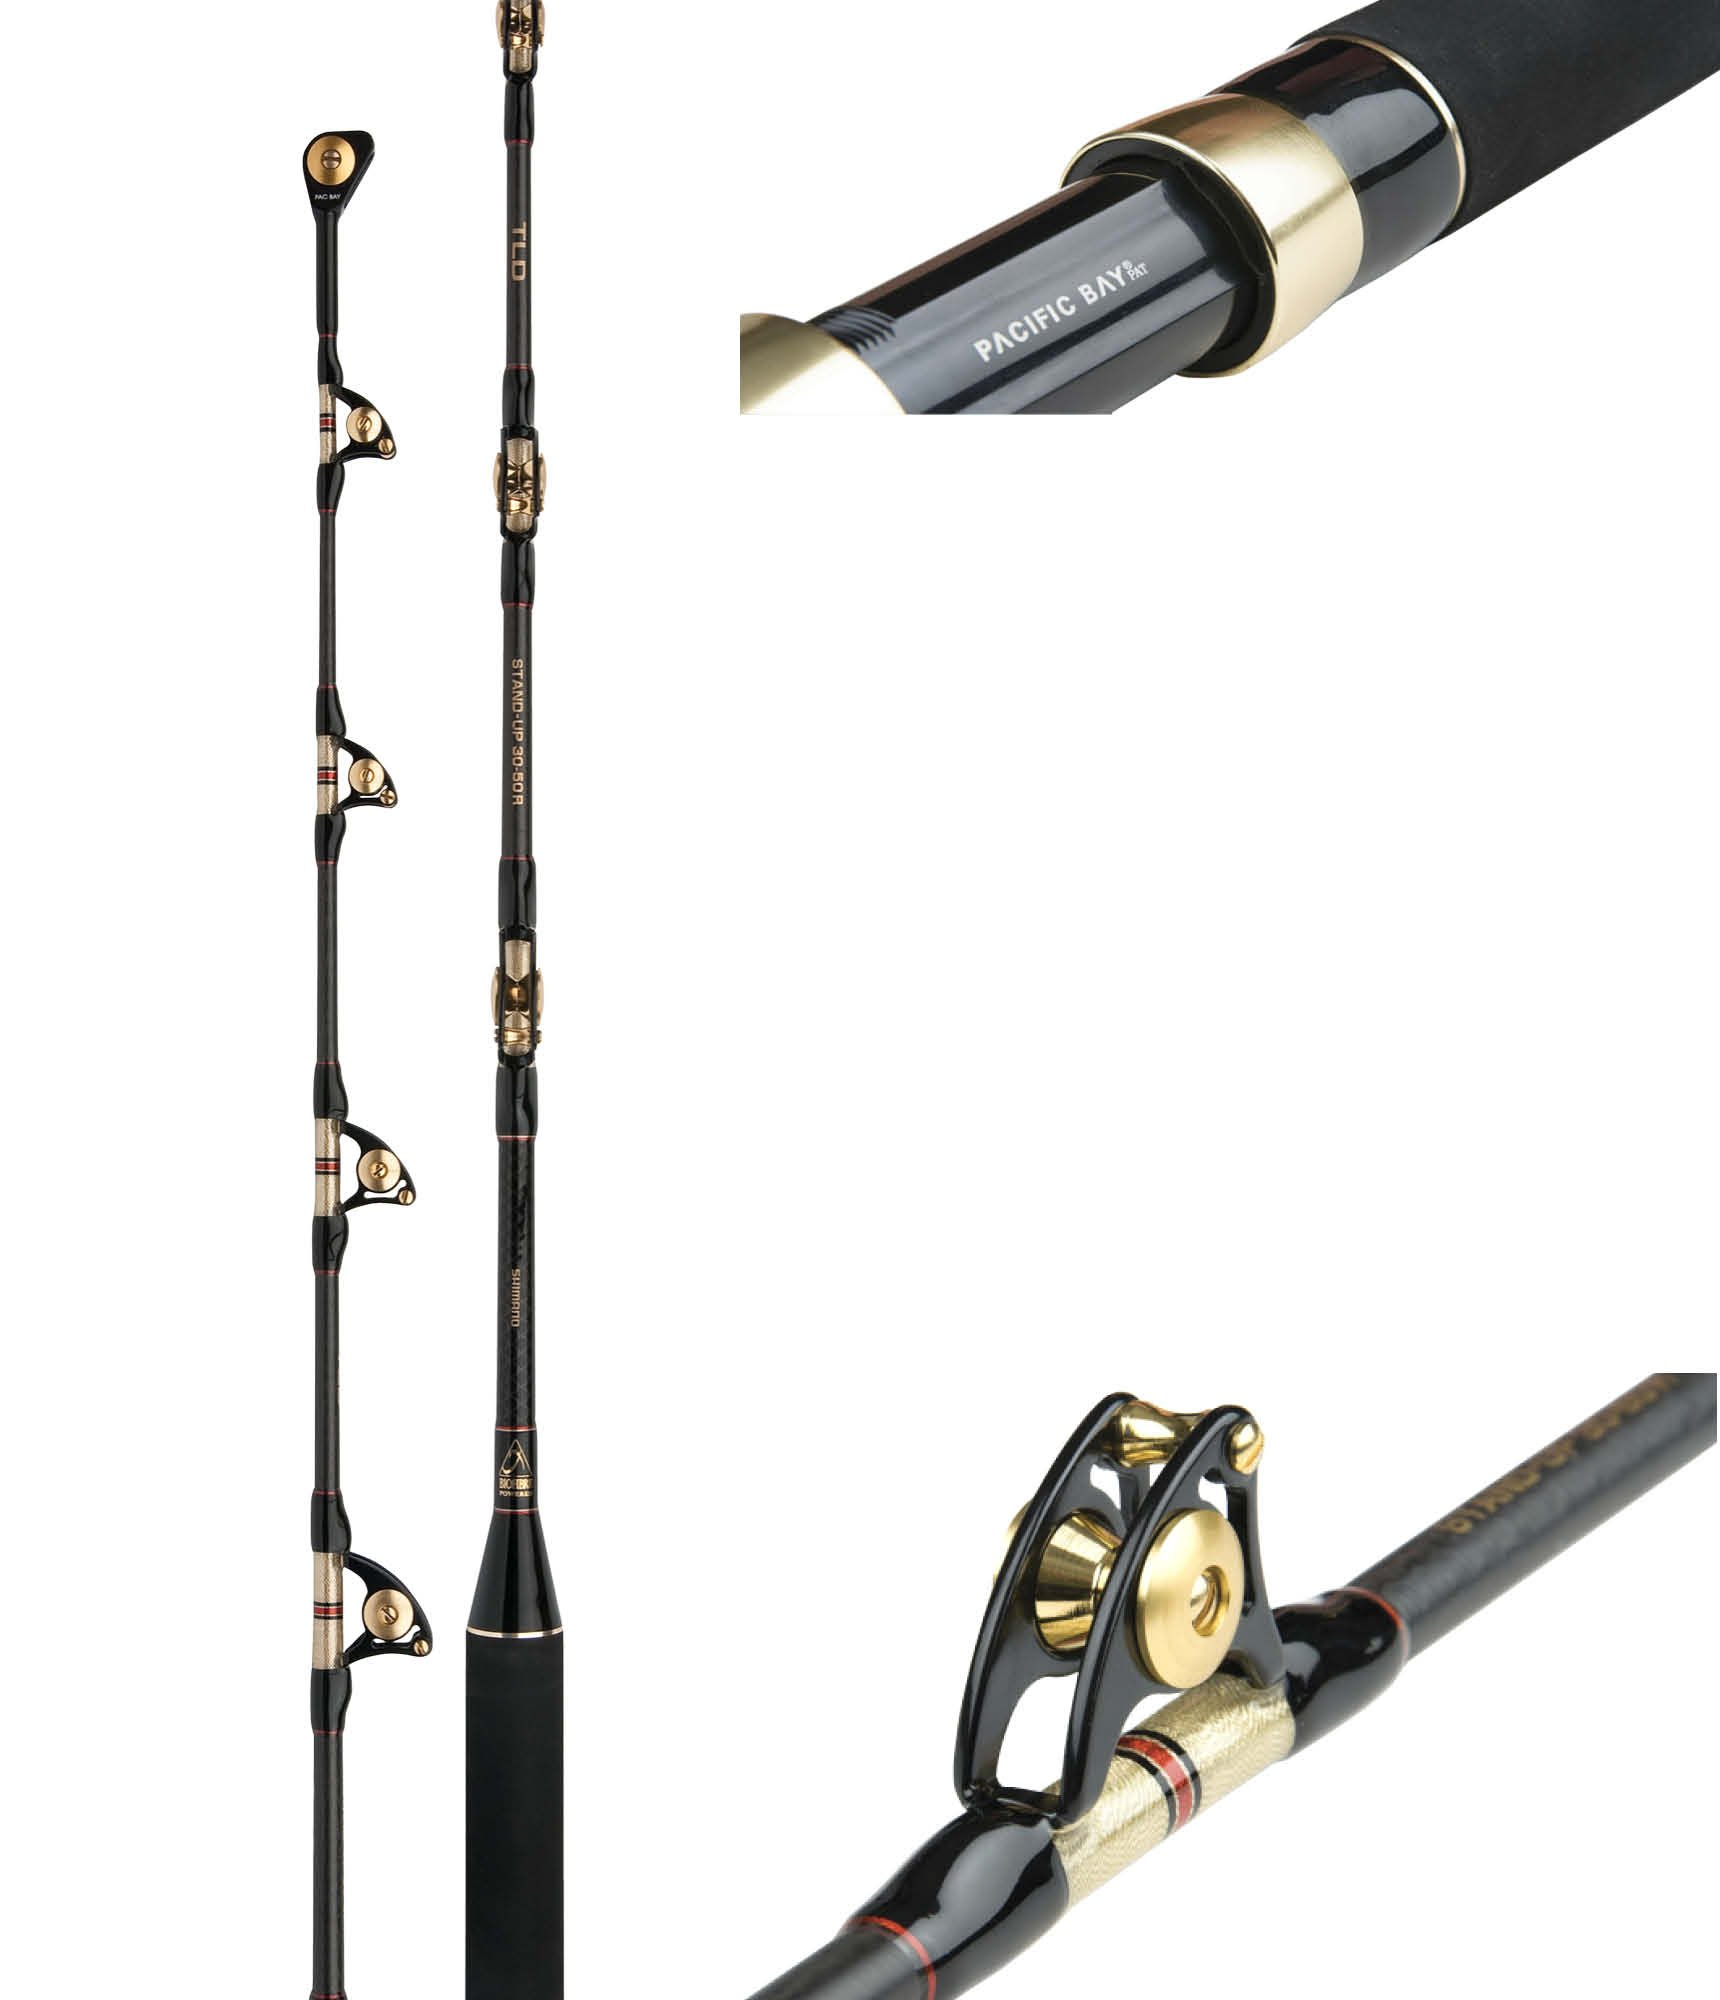 Shimano TLD Stand-up, 50-80lbs, 1,67m, Boat rod with Rollerguides by Shimano